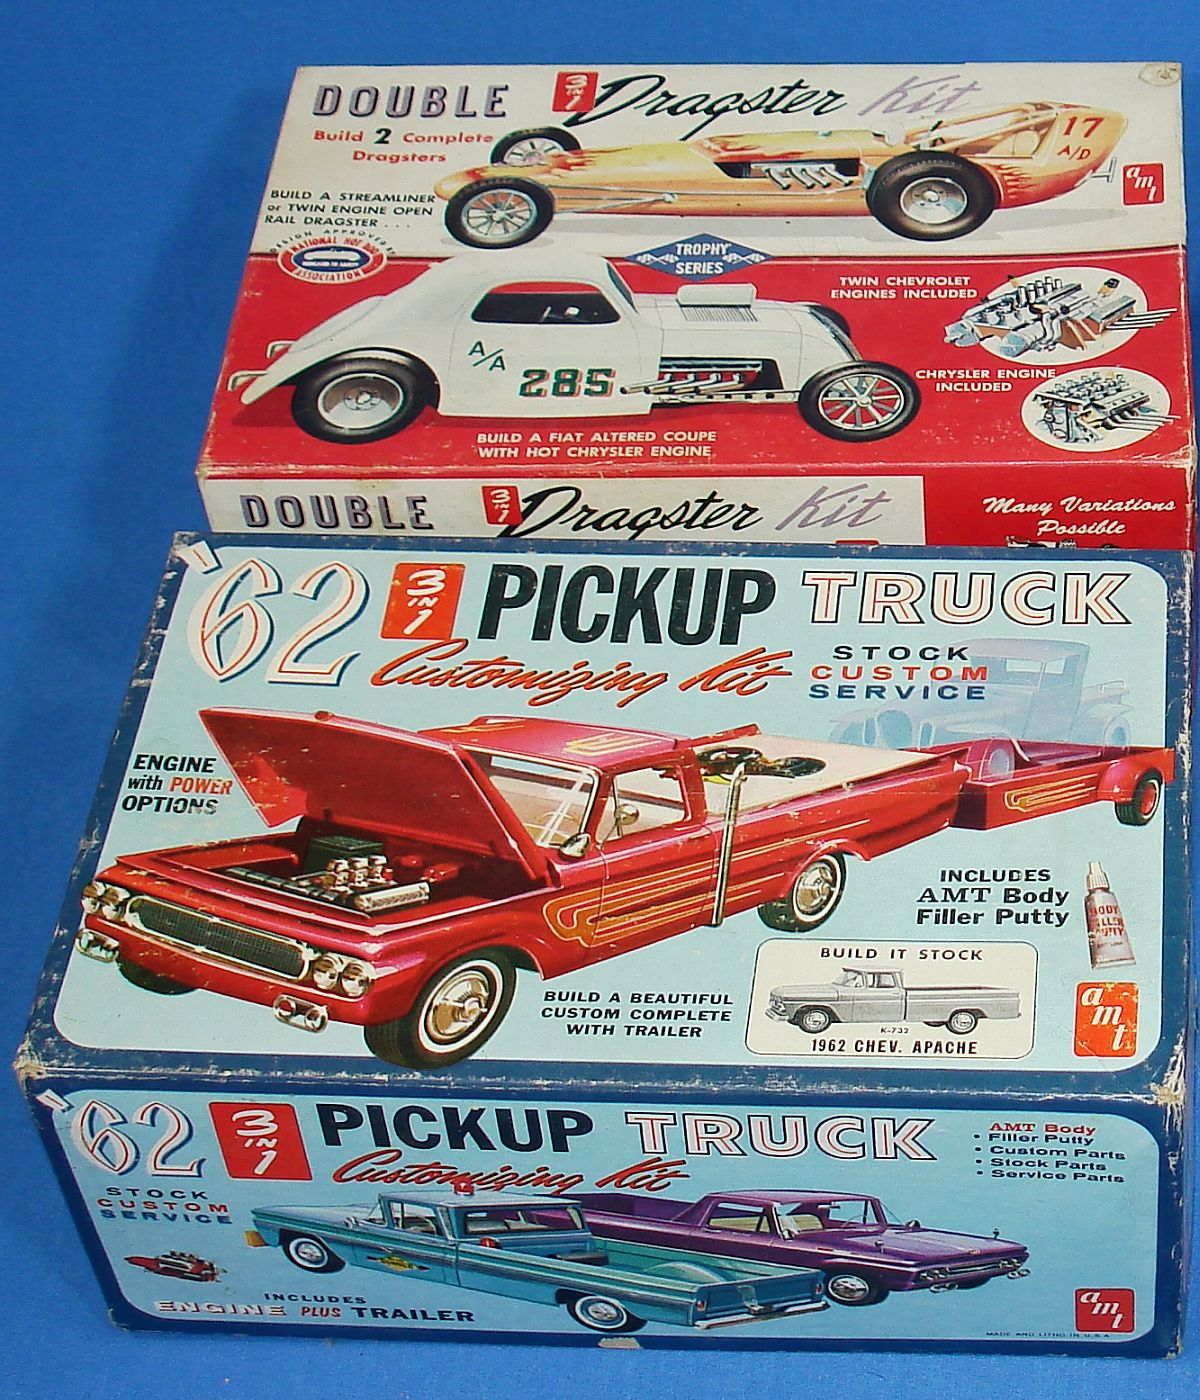 Vintage AMT Plastic Model Kit Empty Boxes Double Dragster 1962 Chevy Apache Pickup Truck